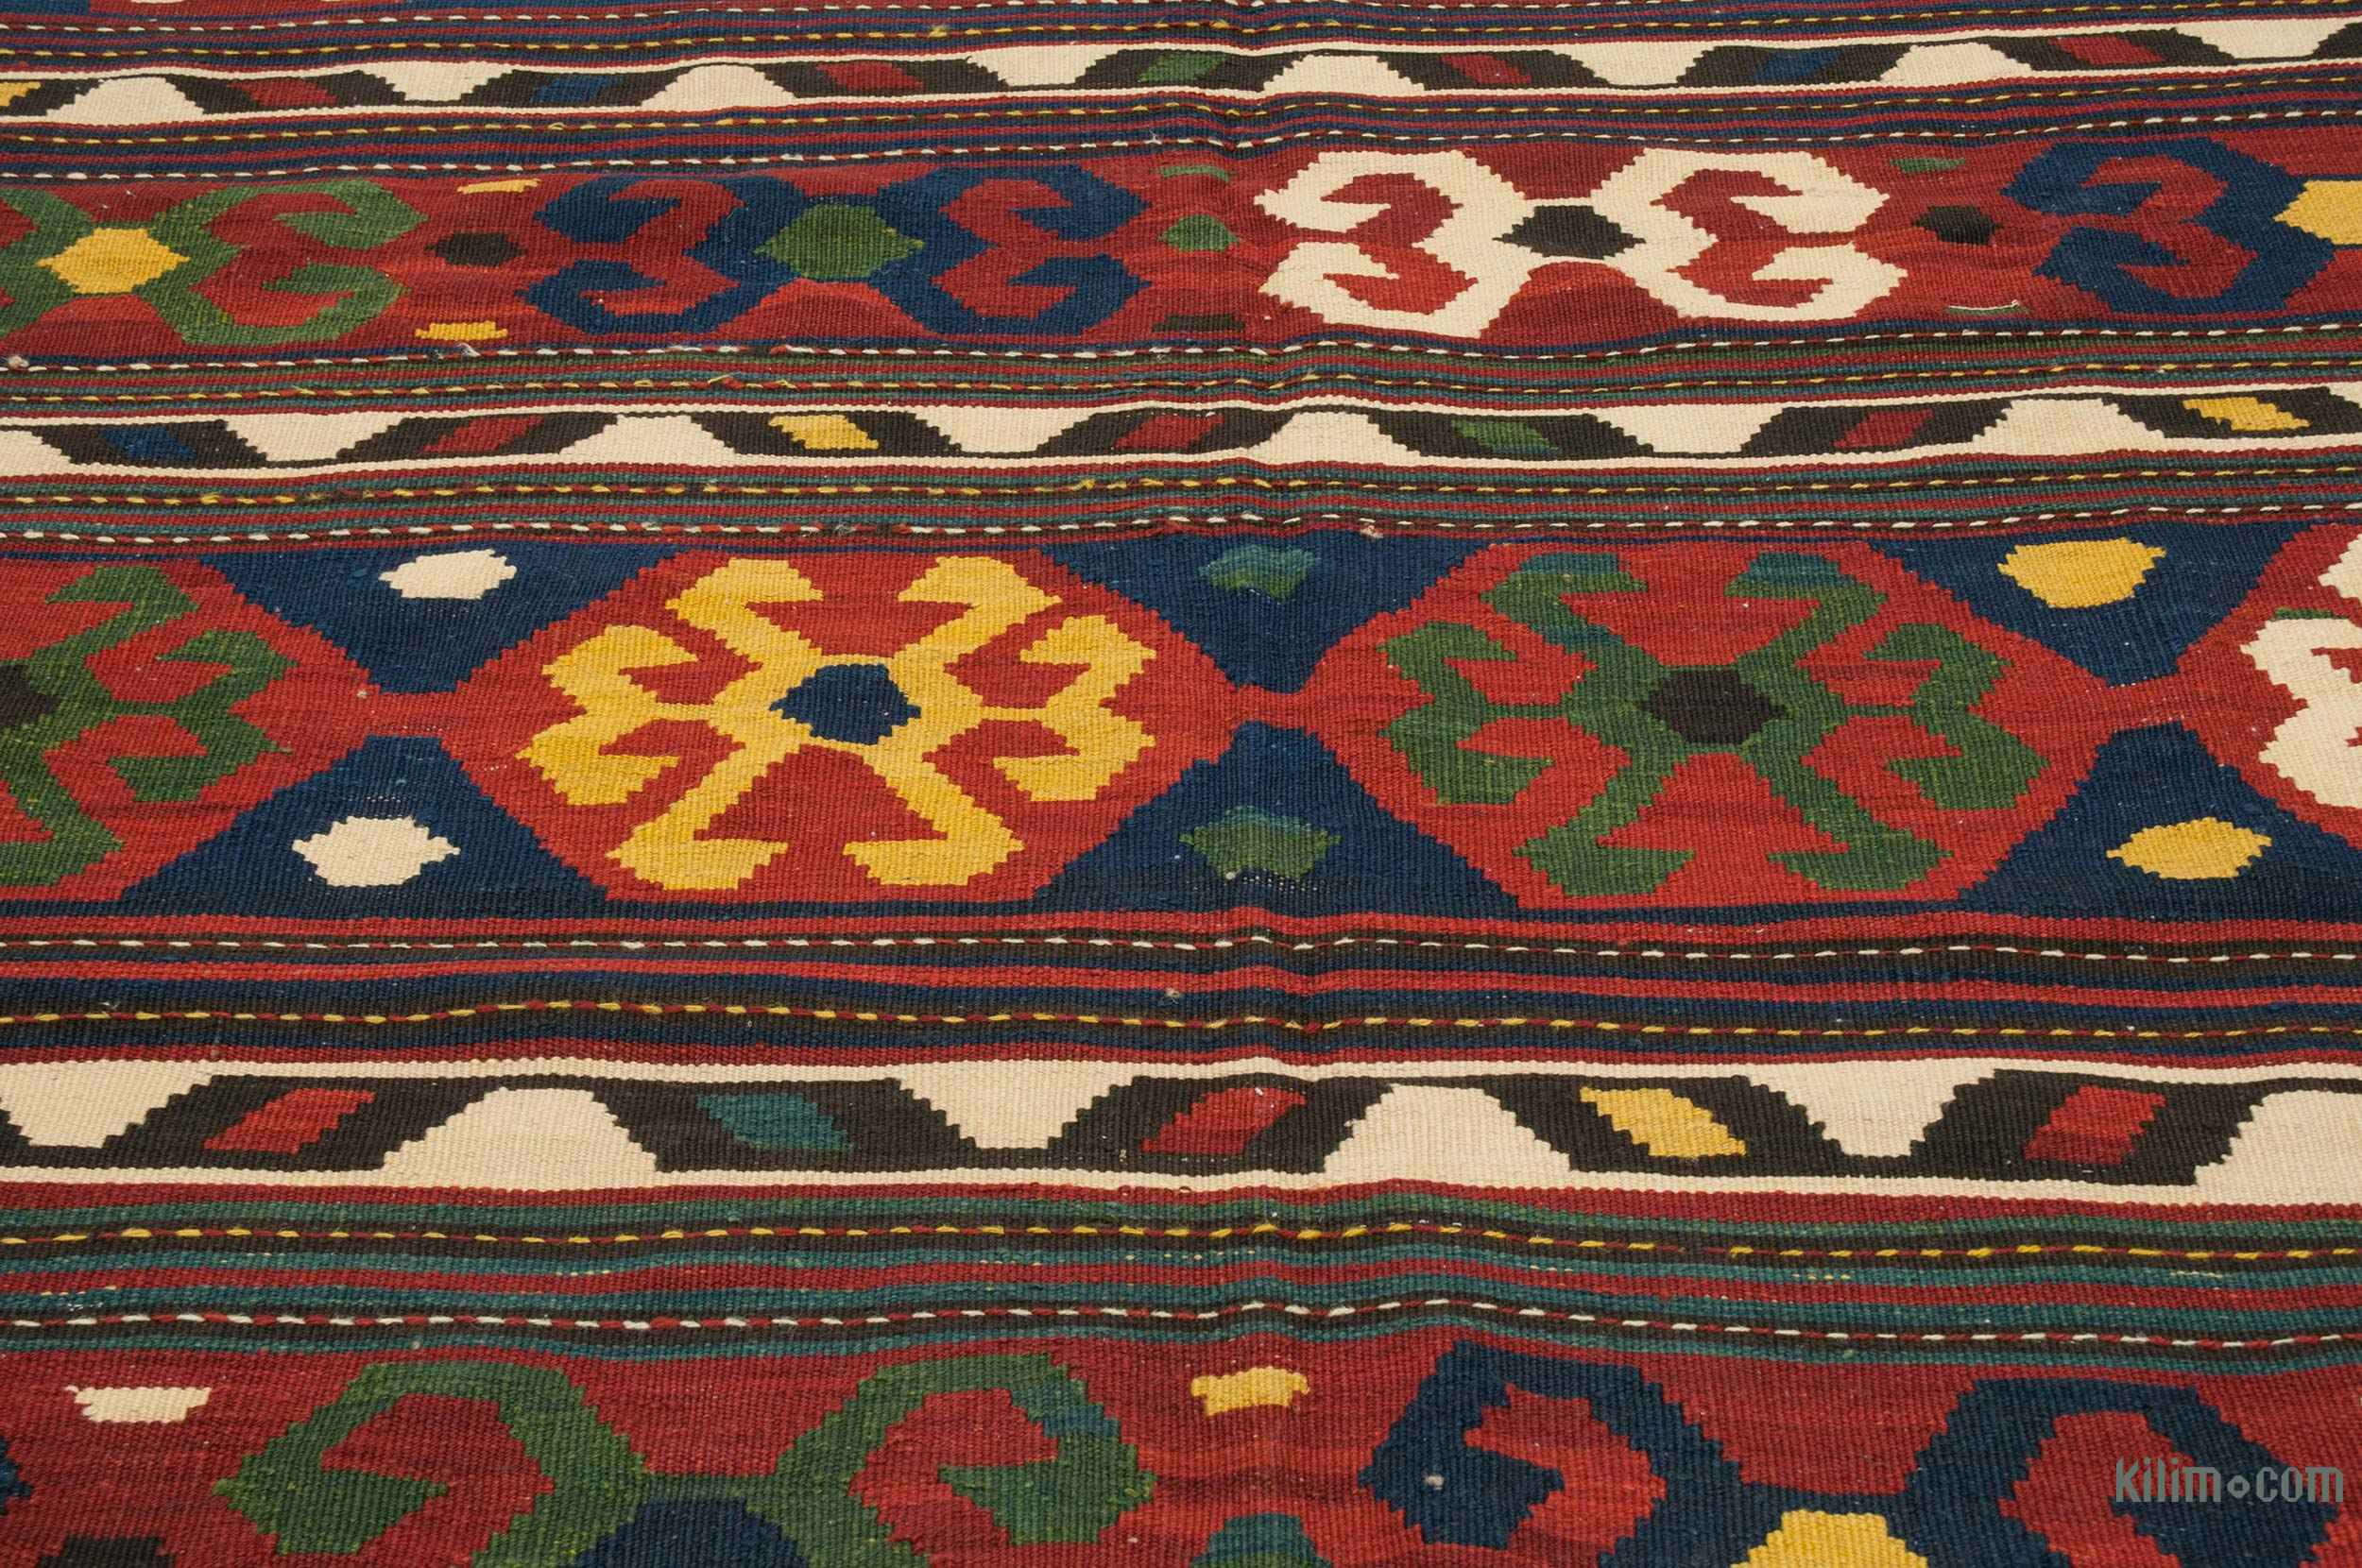 Red Blue Antique Shahsavan Kilim Rug Click To Enlarge